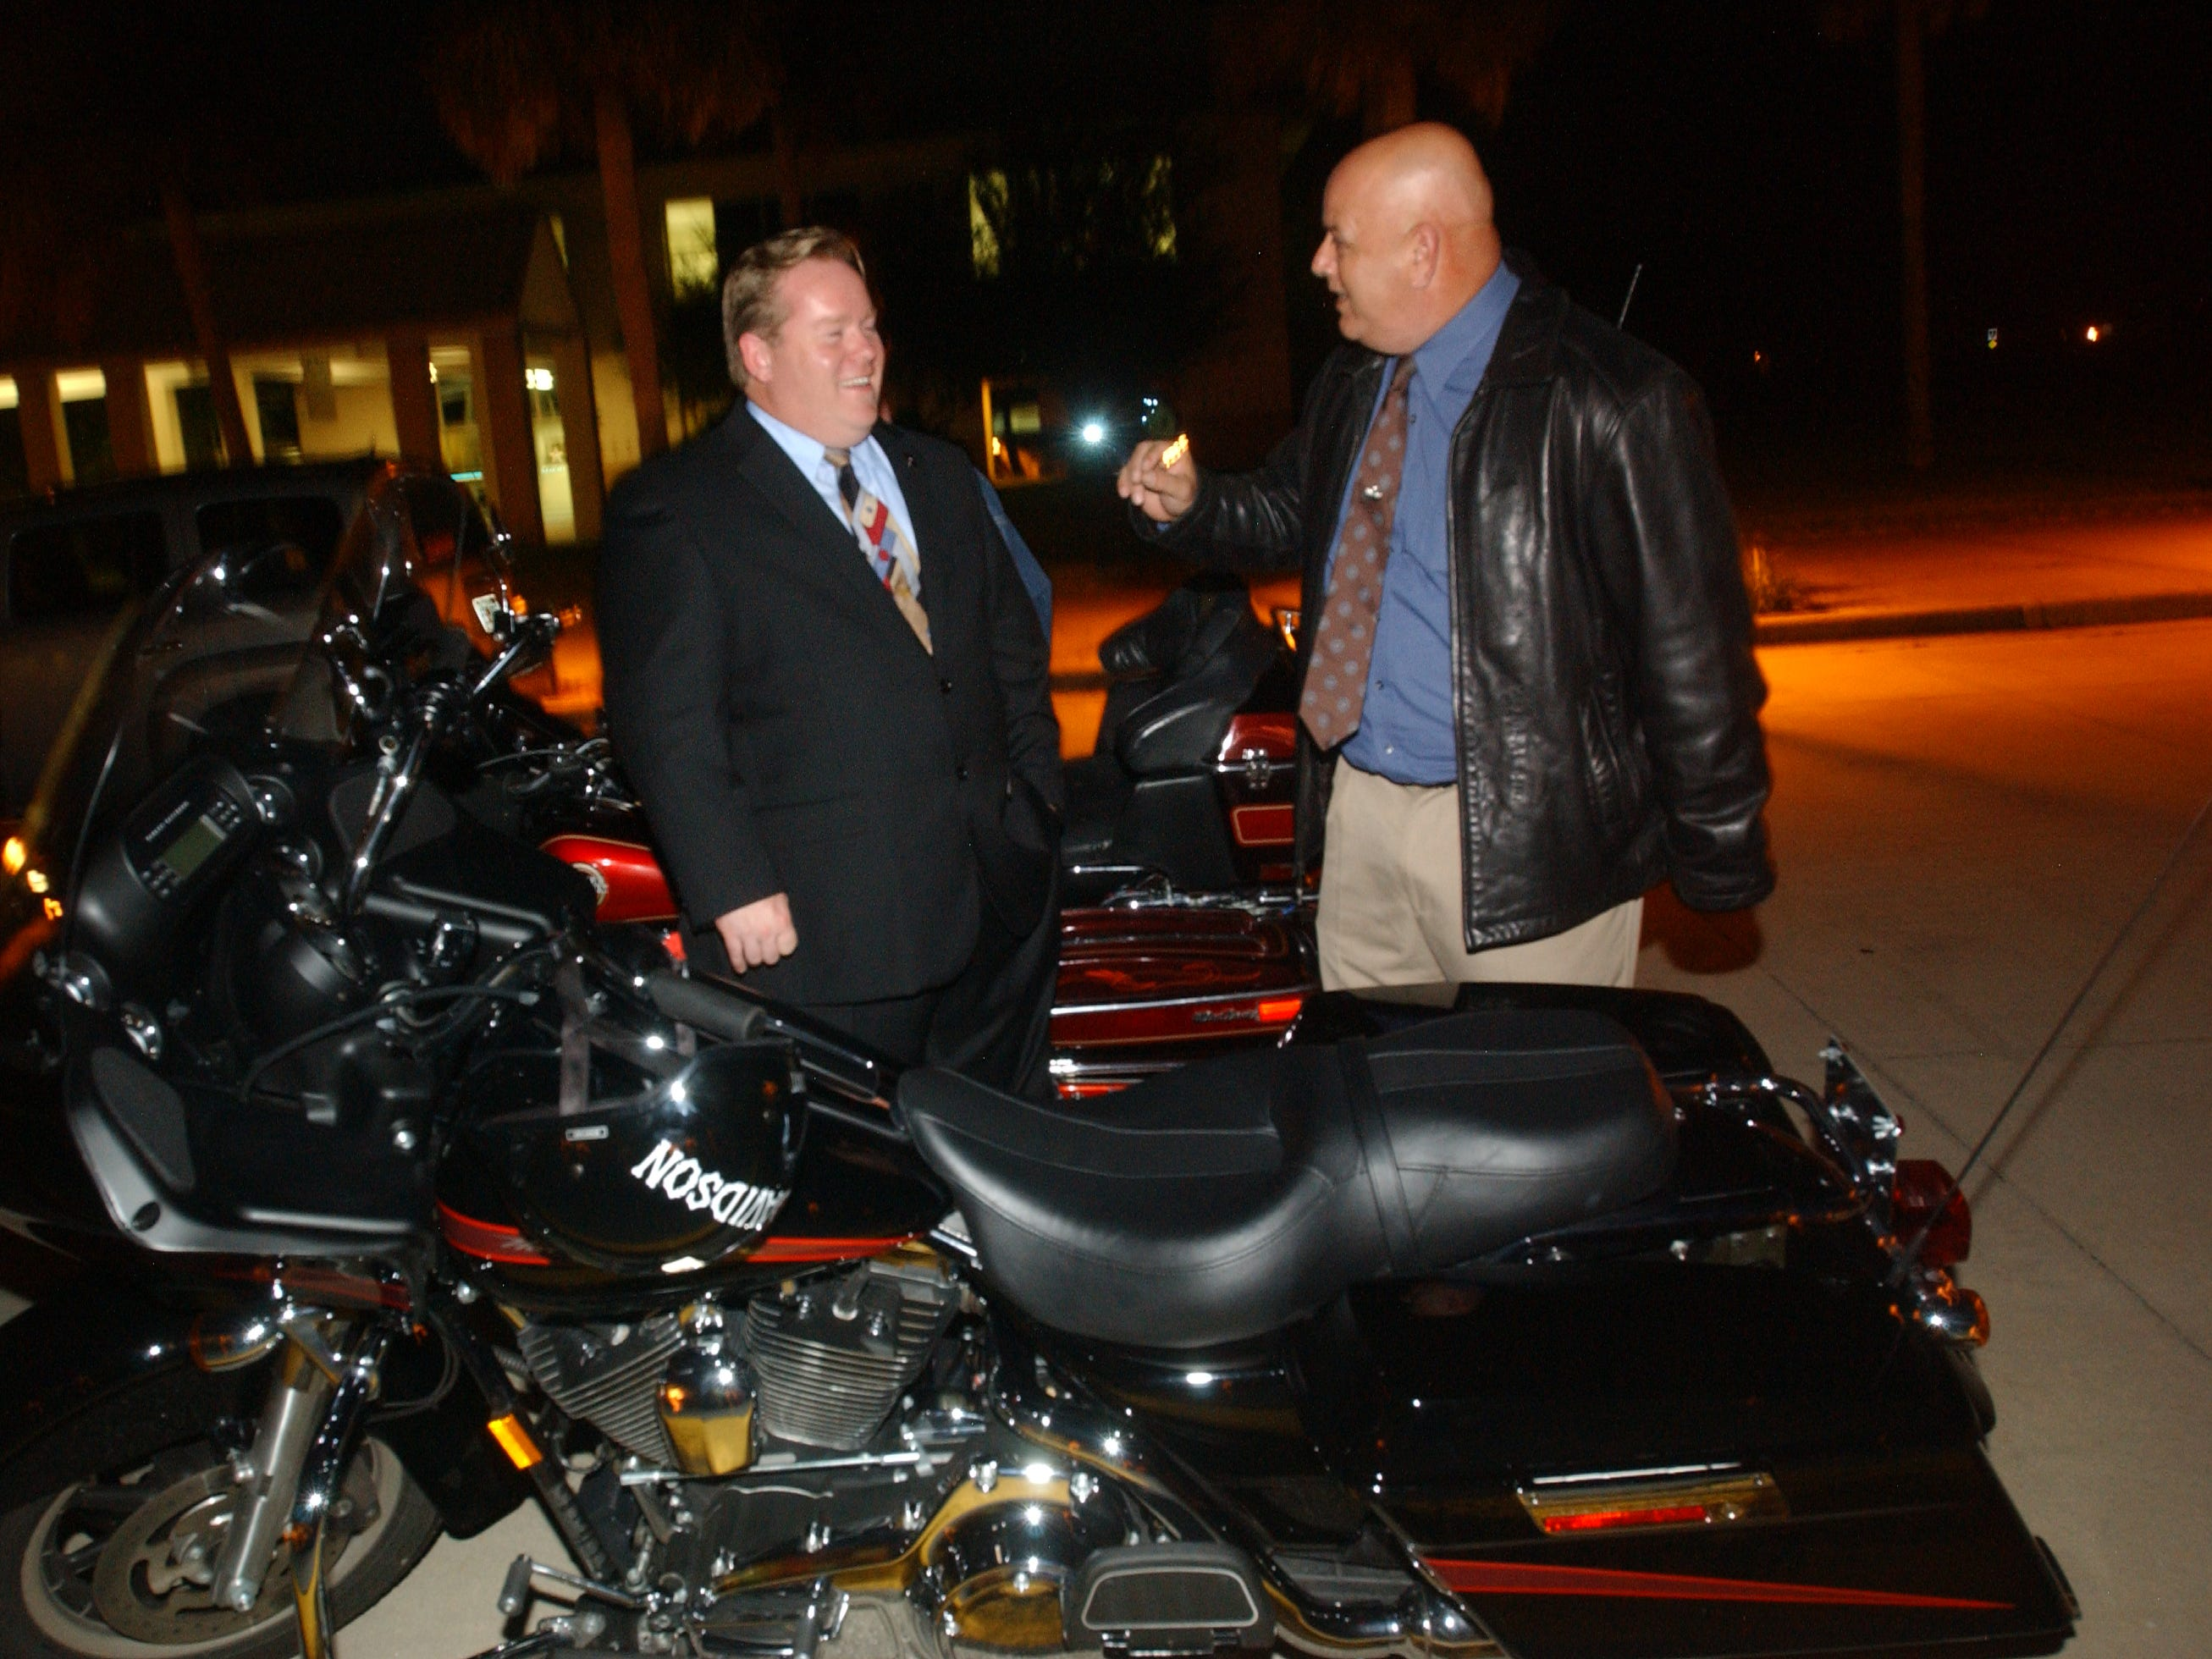 Andy Anderson, left, and Dave Isnardi visit together after the Brevard County Commission meeting.